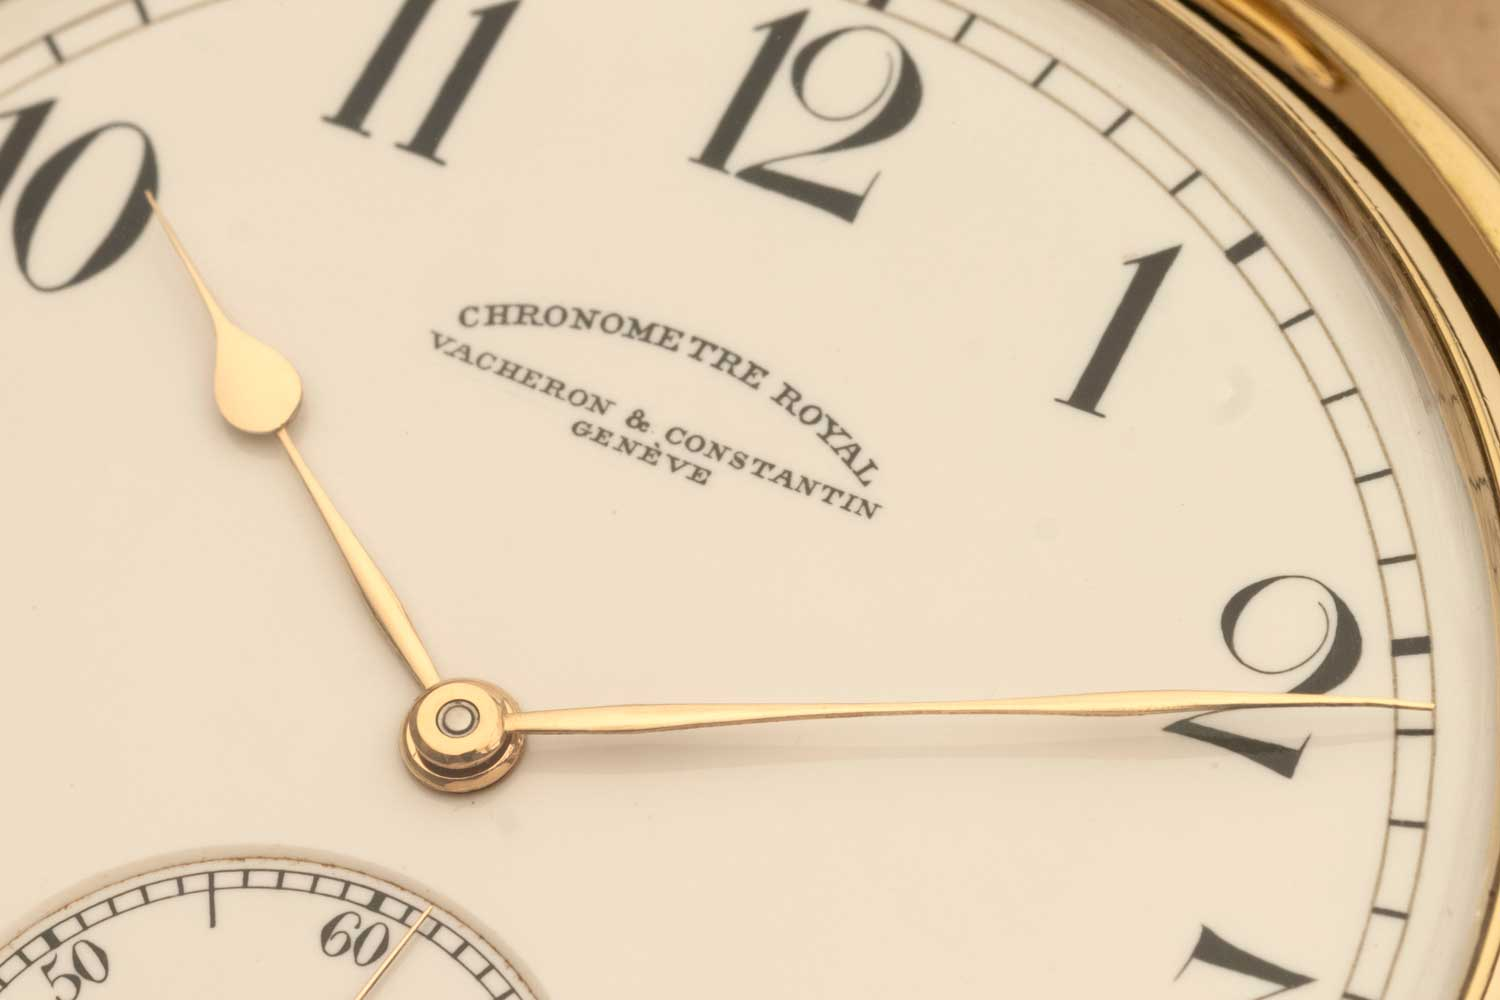 The Chronomètre Royal pocket watch on offer here remains in all its glory featuring a 18k yellow gold case, grand feu enamel dial that still looks remarkably vibrant for its 111 years if existence (©Revolution)